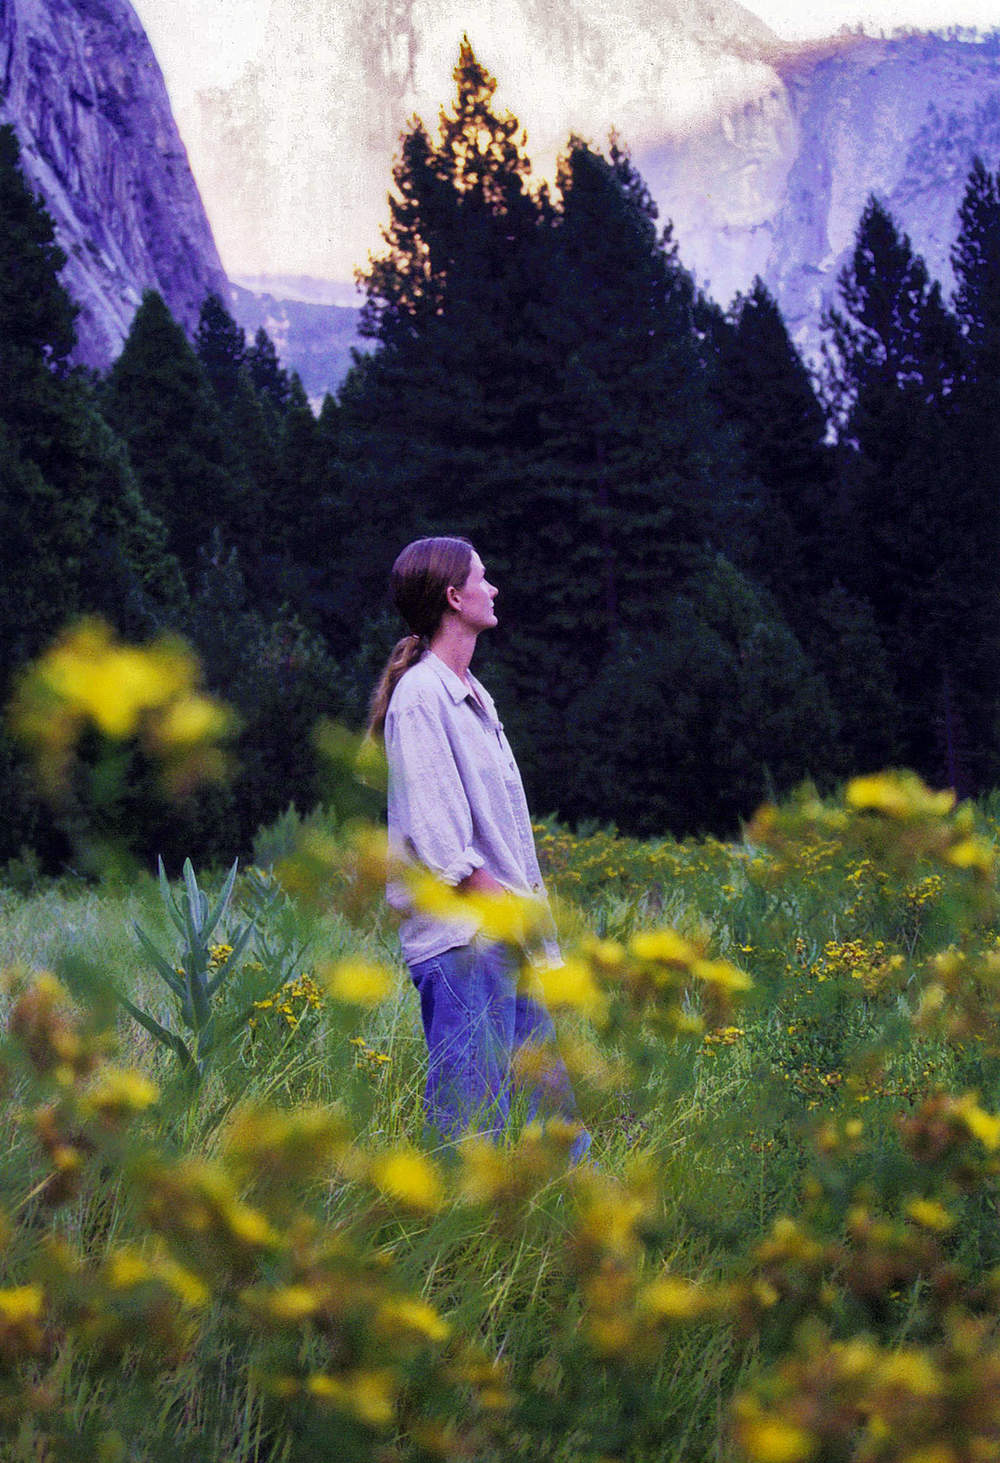 Susan Harlan Slater at Yosemite National Park